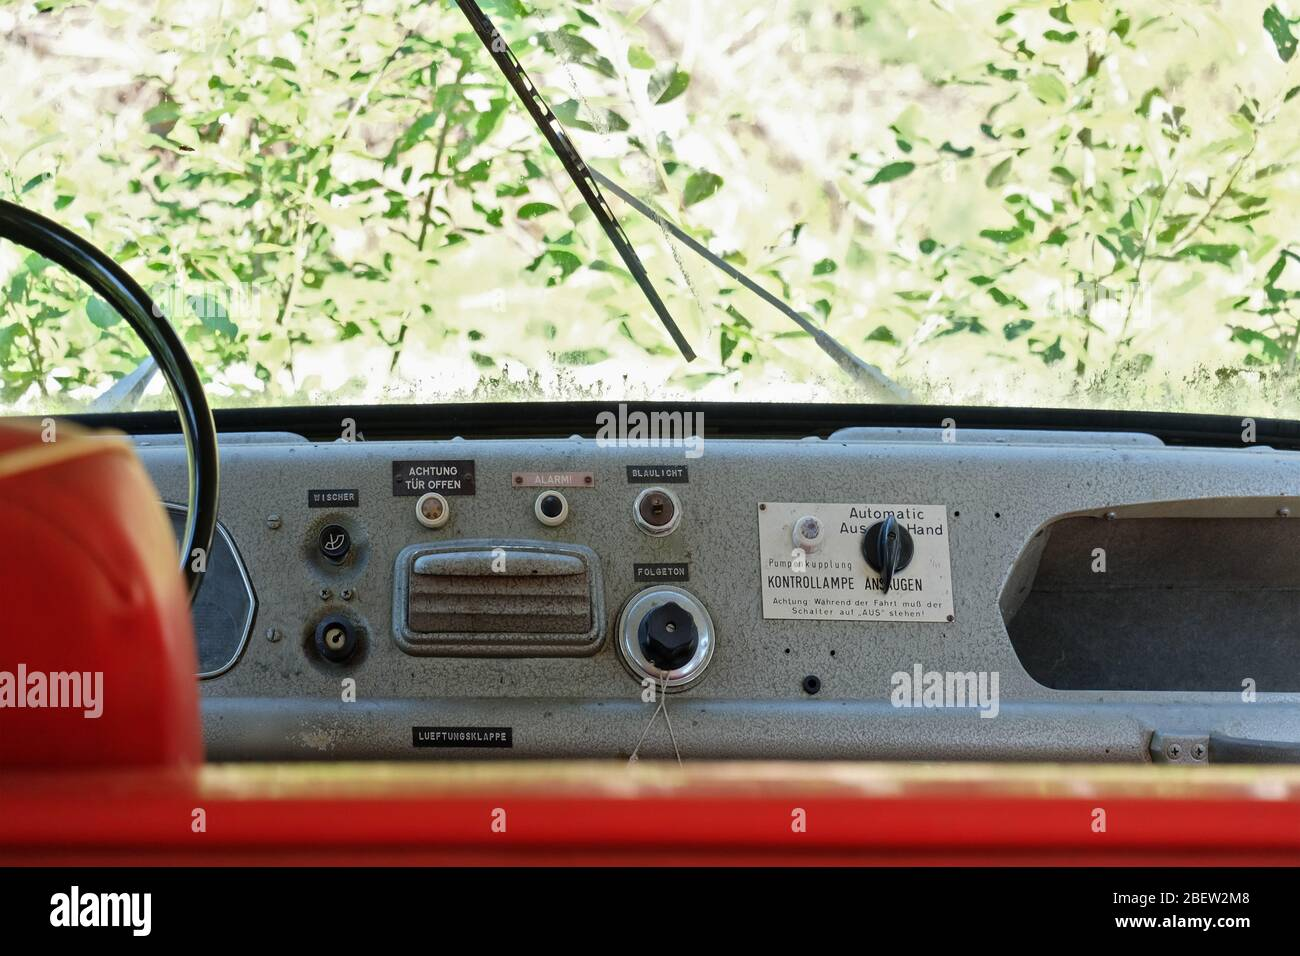 FEUERWEHRWAGEN . OPEL BLITZ . FIRE TRUCK Stock Photo